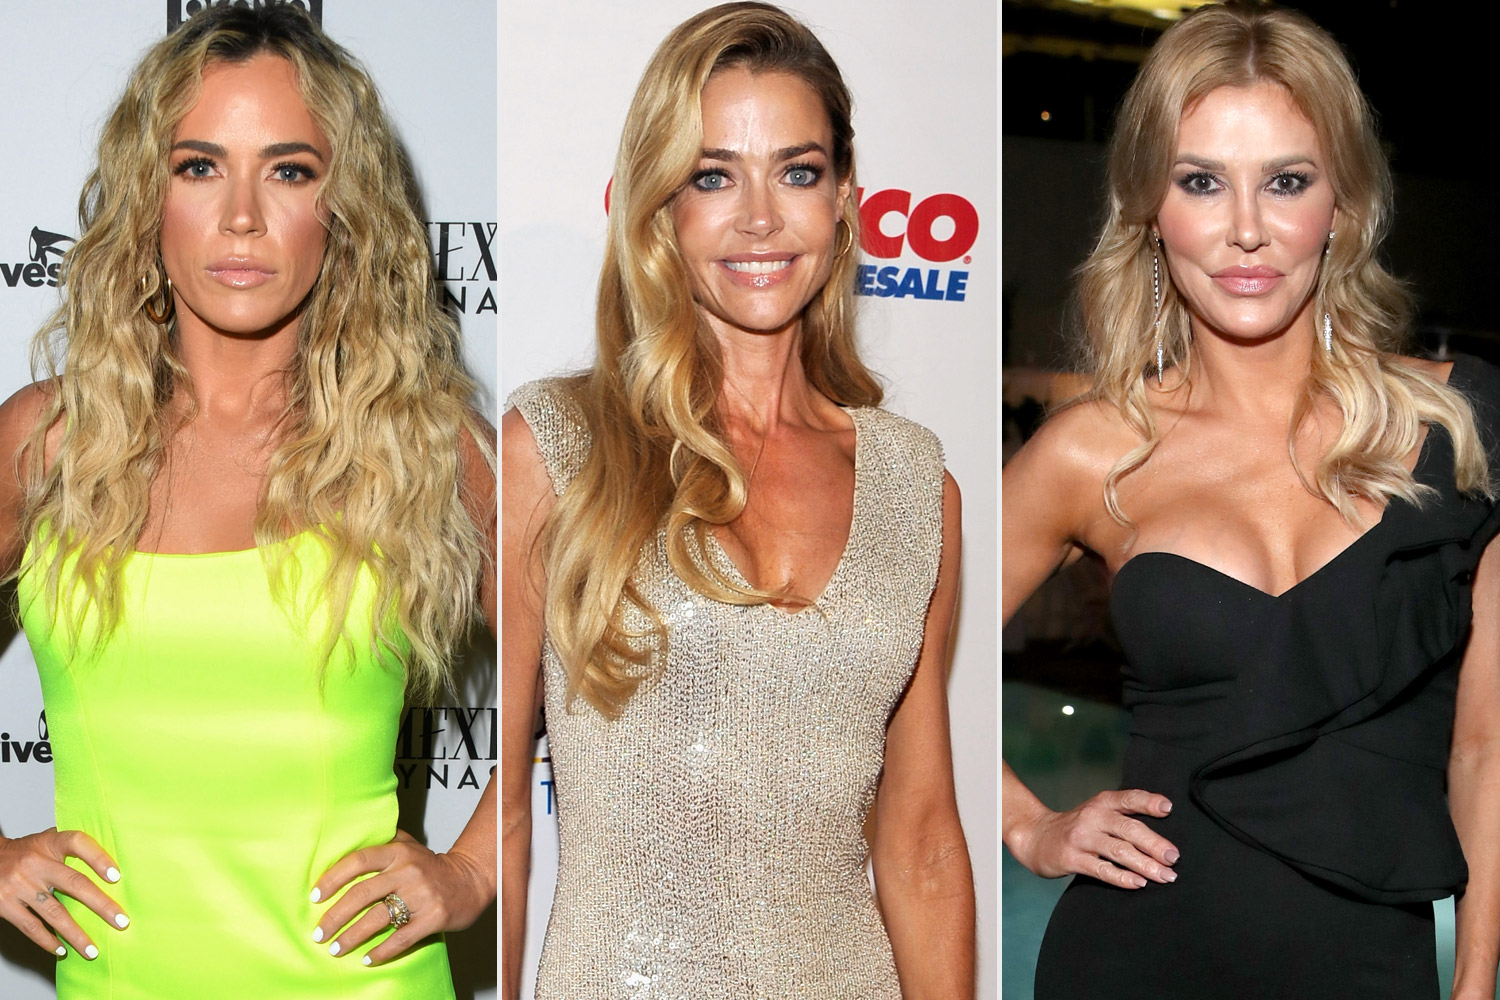 Teddi Mellencamp, Brandi Glanville, Denise Richards